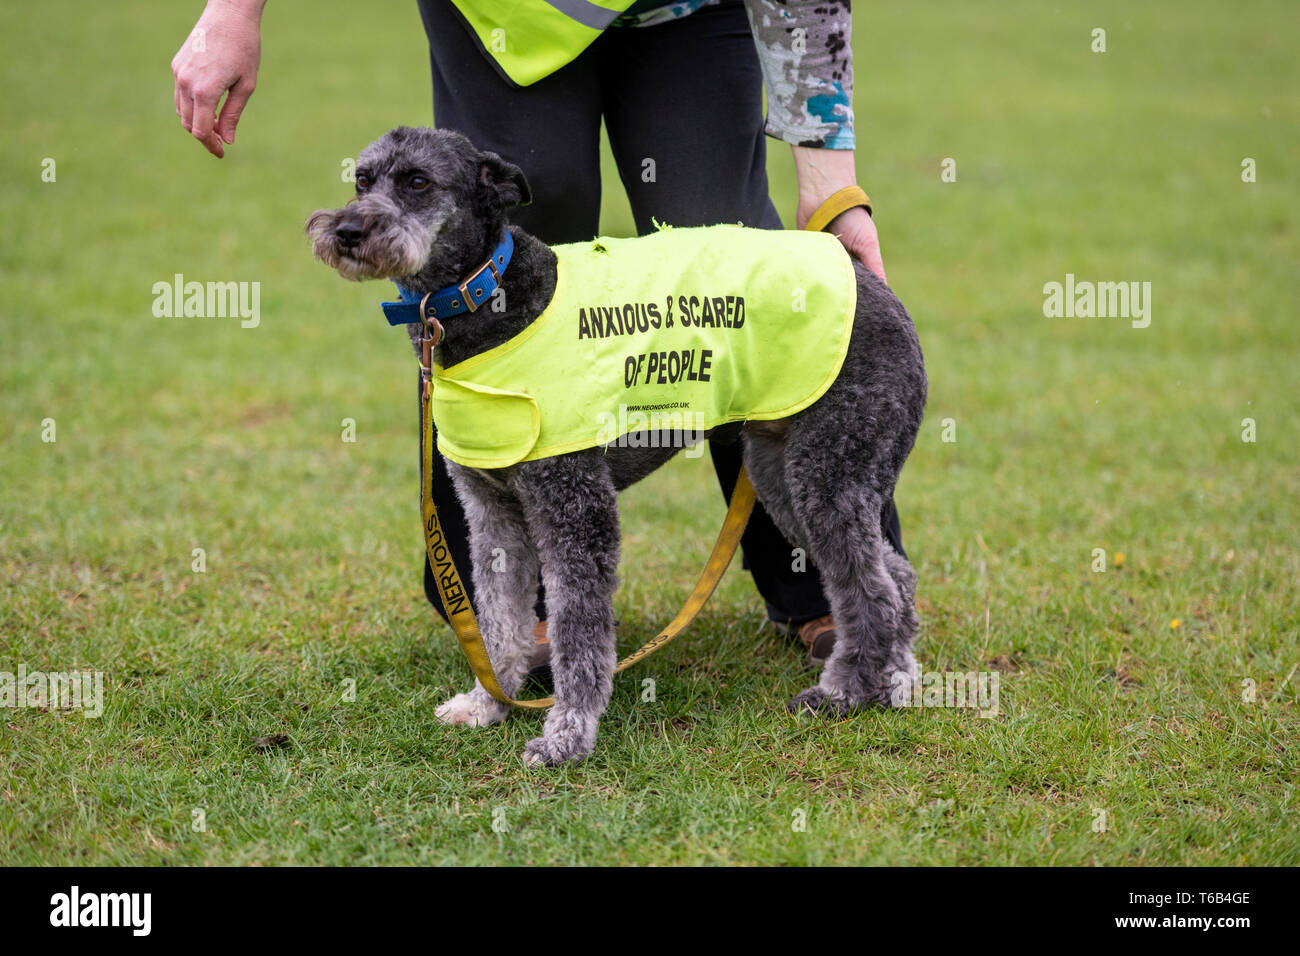 A woman with a dog wearing a yellow hi vis jacket with Anxious and Scared of people written on it. - Stock Image